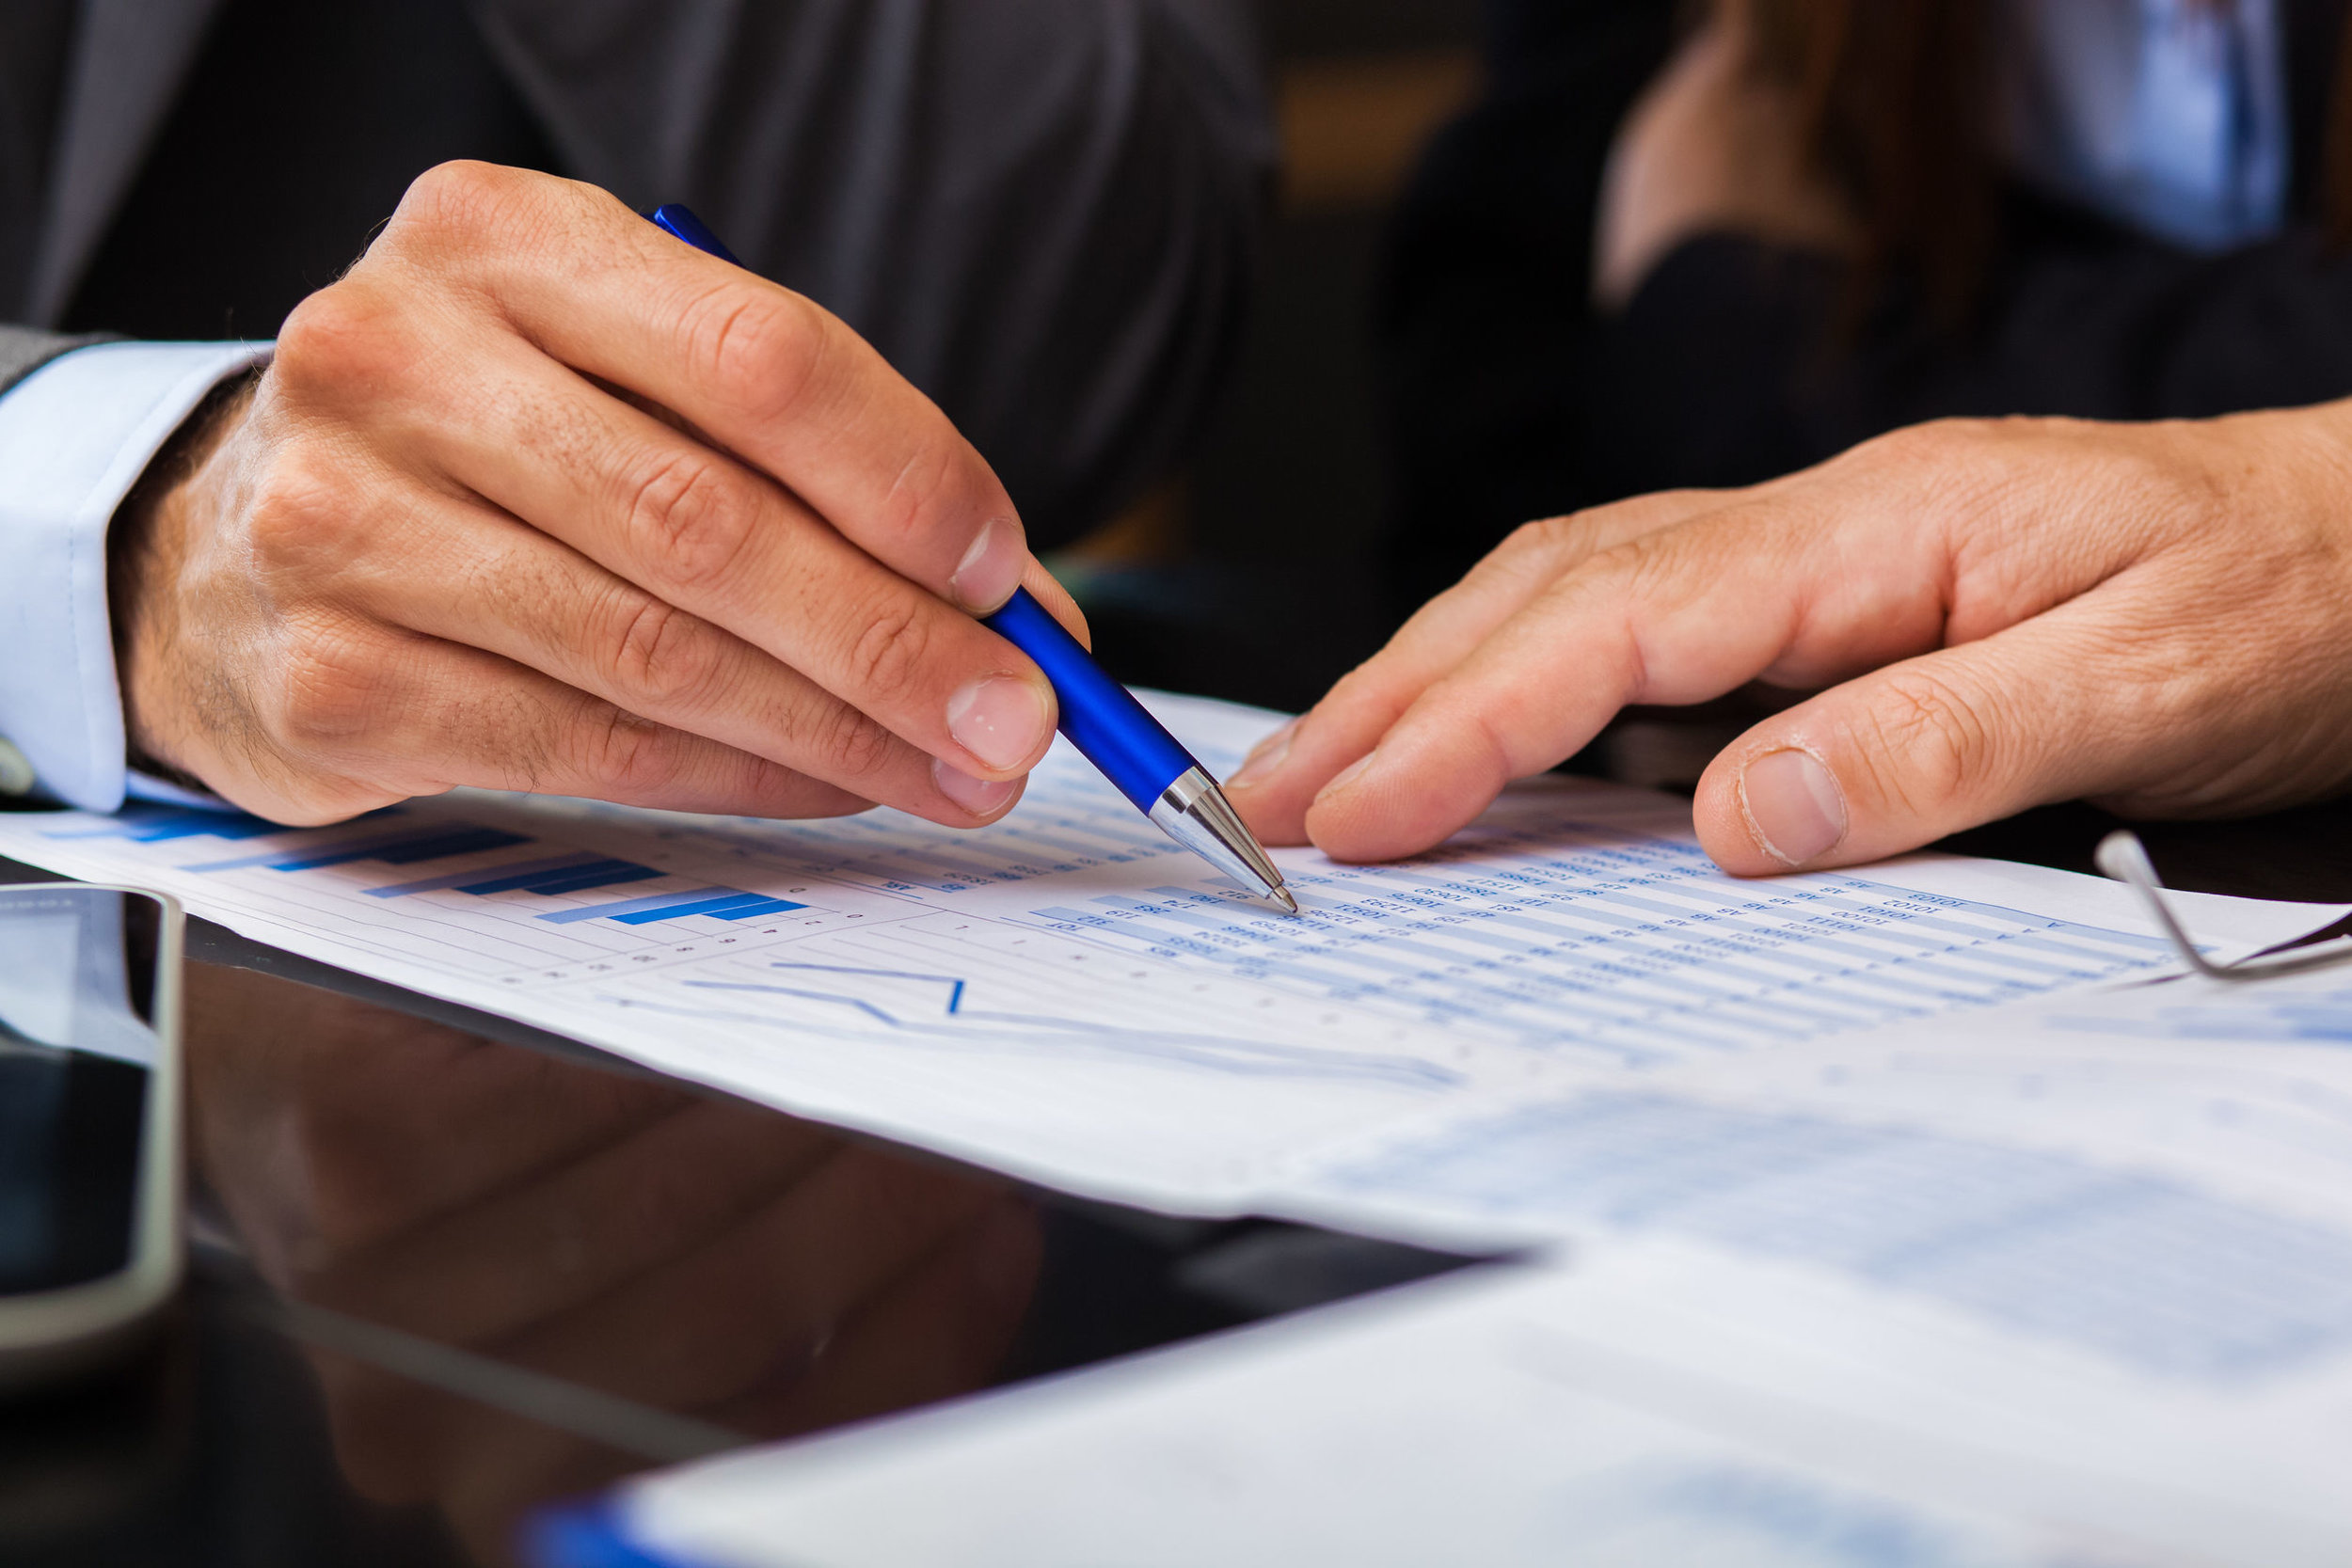 Close up photo of team member writing on financial document. Links to Our Services page.